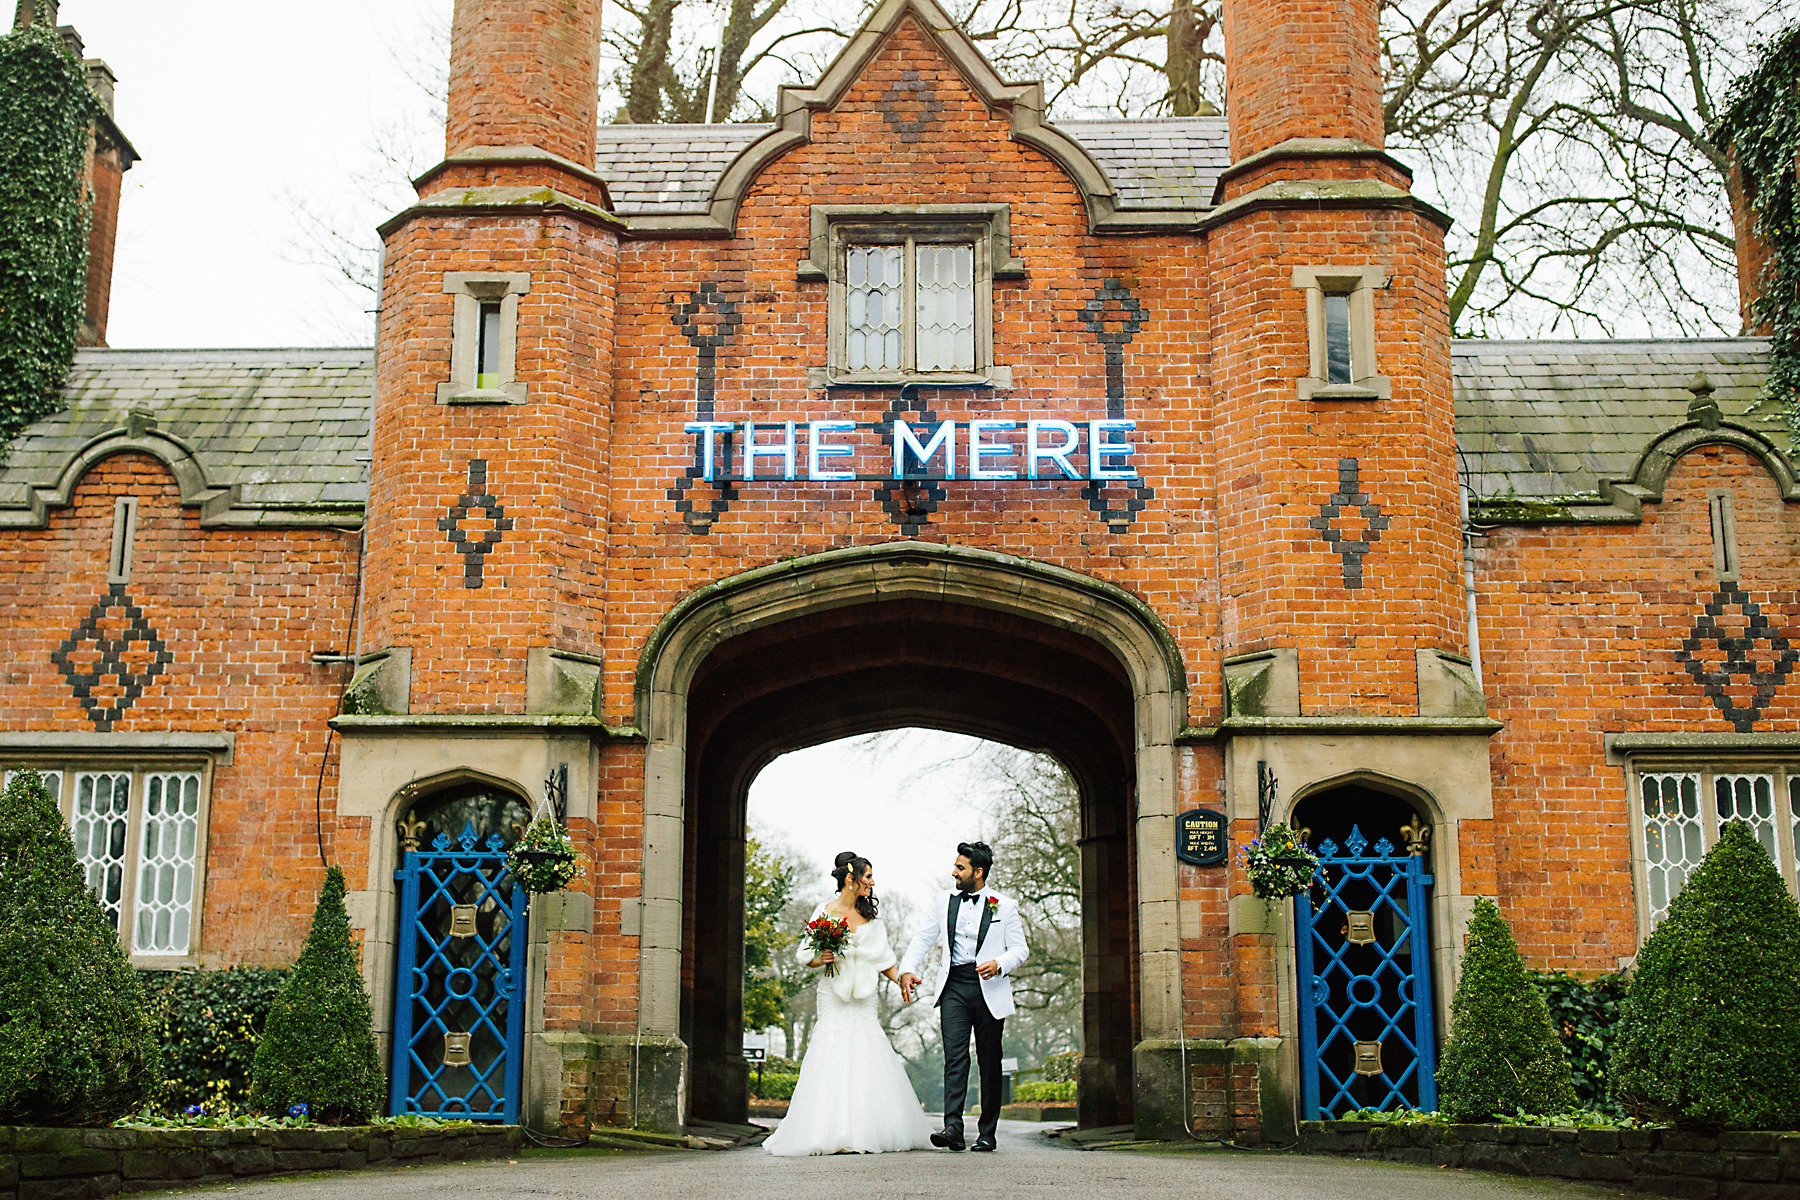 the mere resort entrance wedding photo